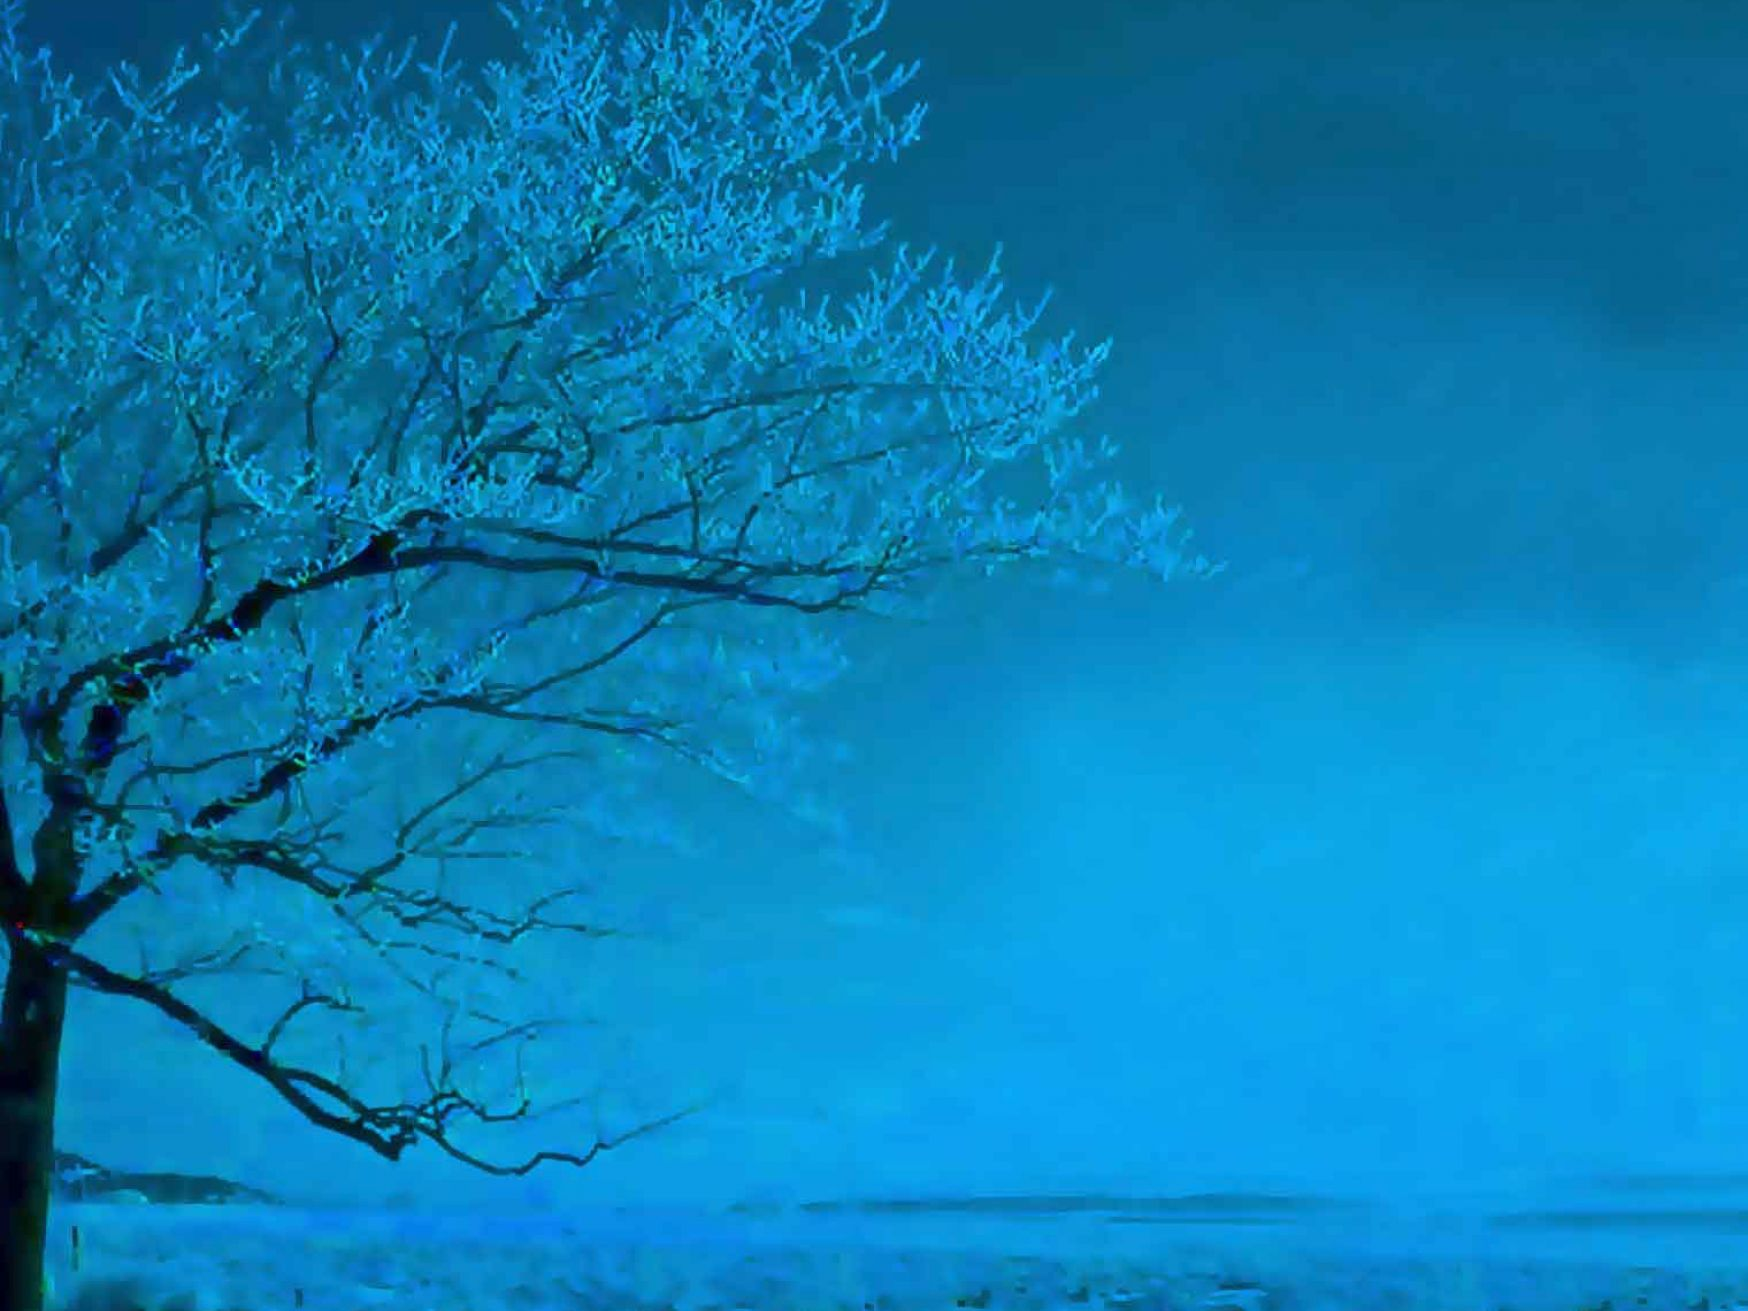 blue christian backgrounds 4